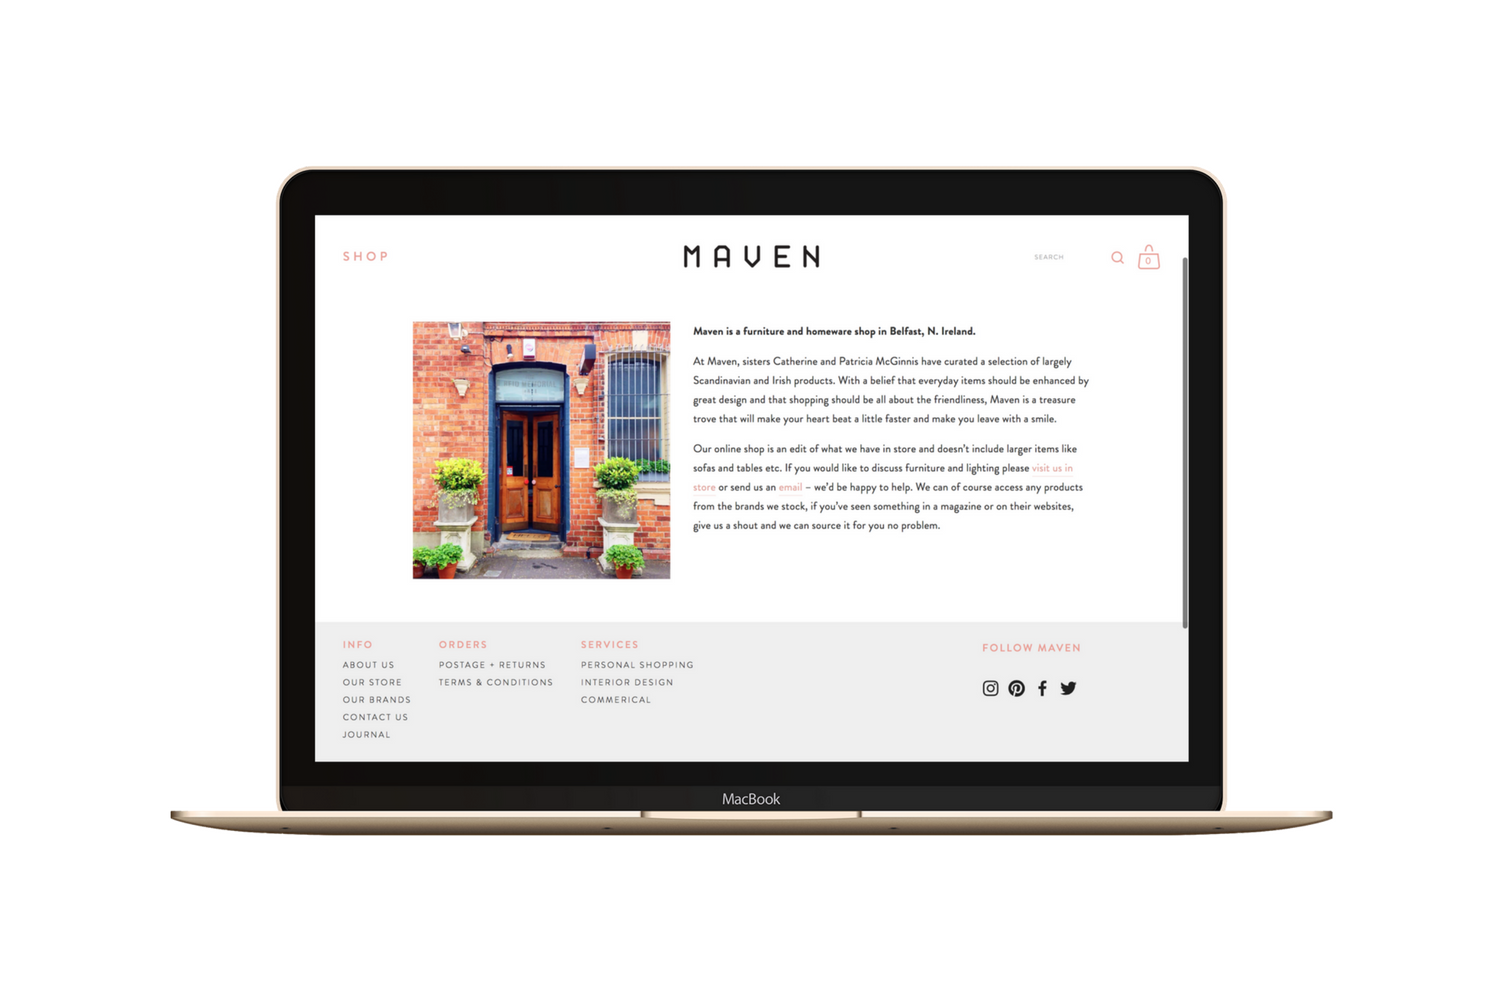 maven-belfast-macbook (1).png